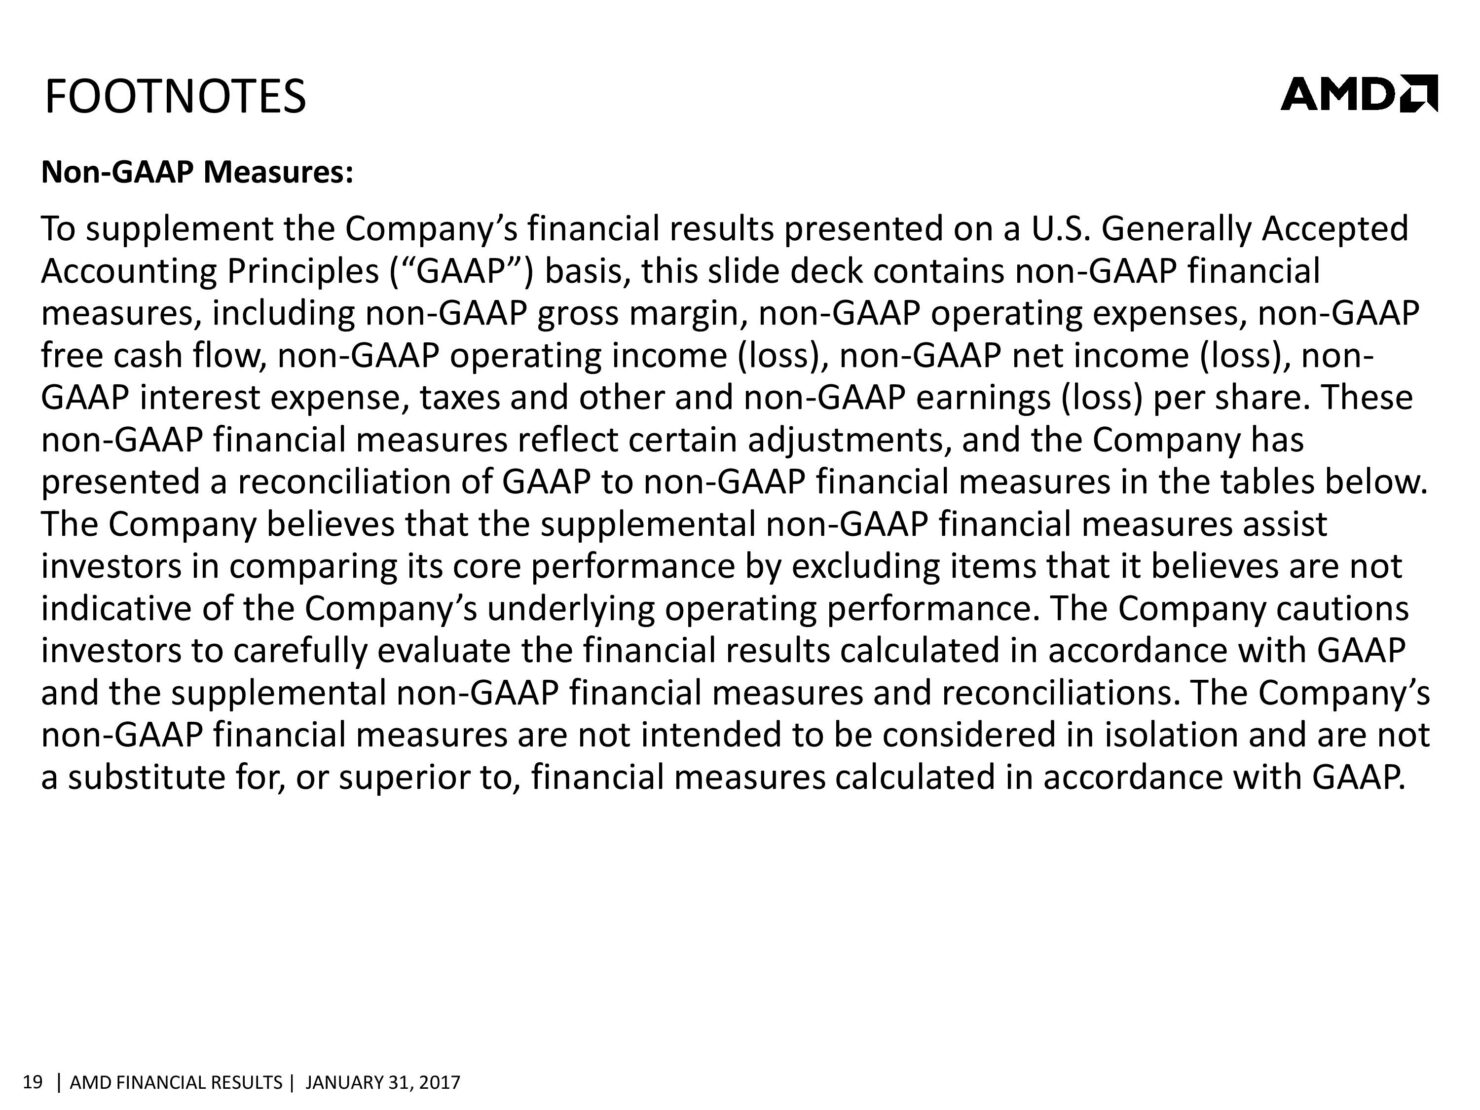 amd-cfo-commentary-slides-q4-16-page-019